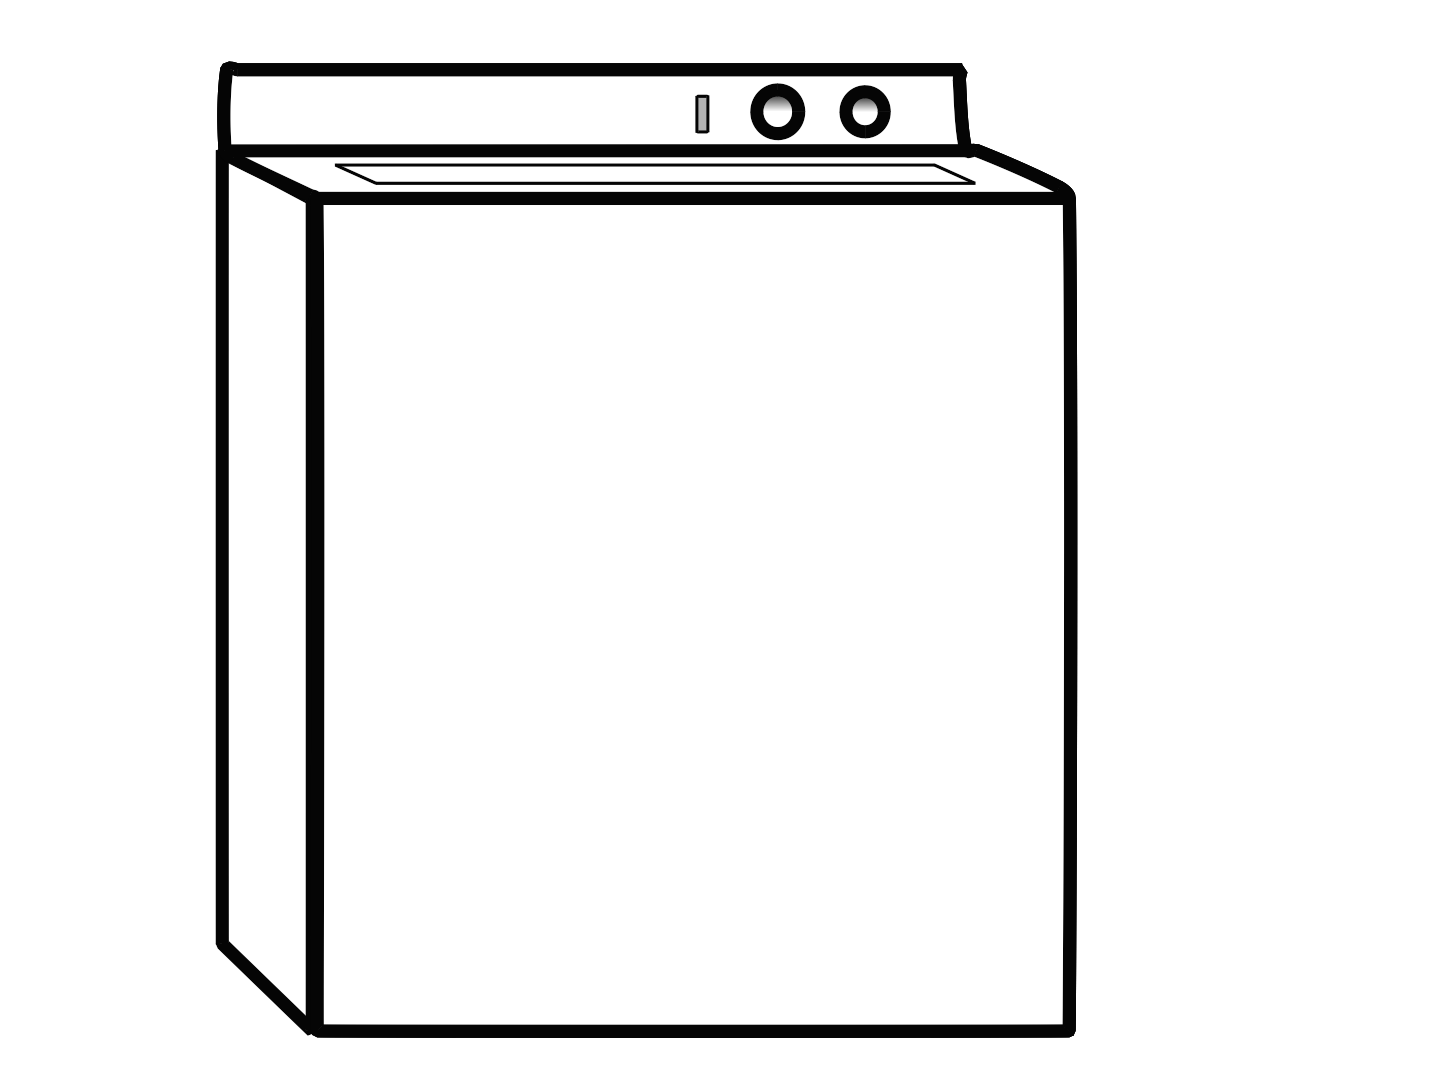 Clipart door animated. Transparent background png anime